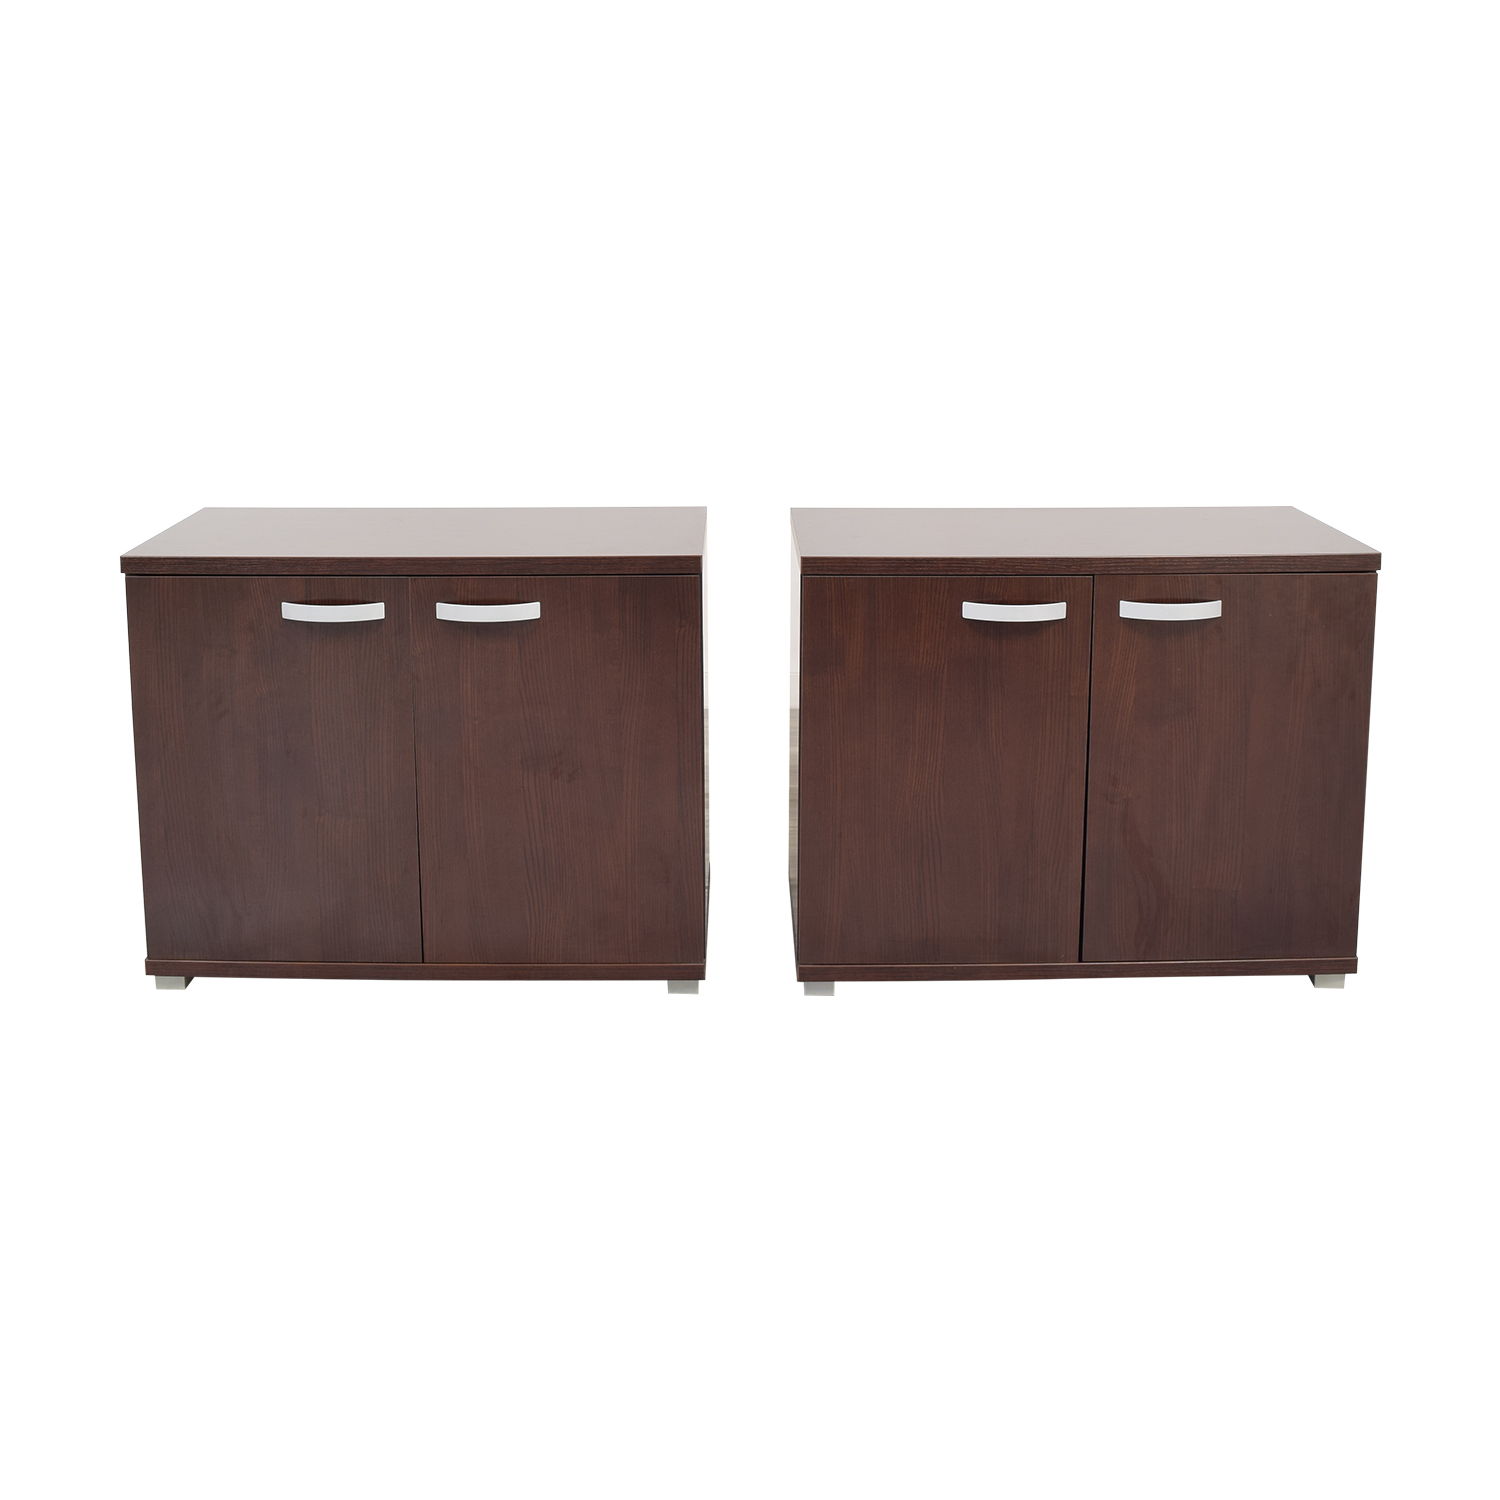 buy West Elm West Elm Storage Cabinets online